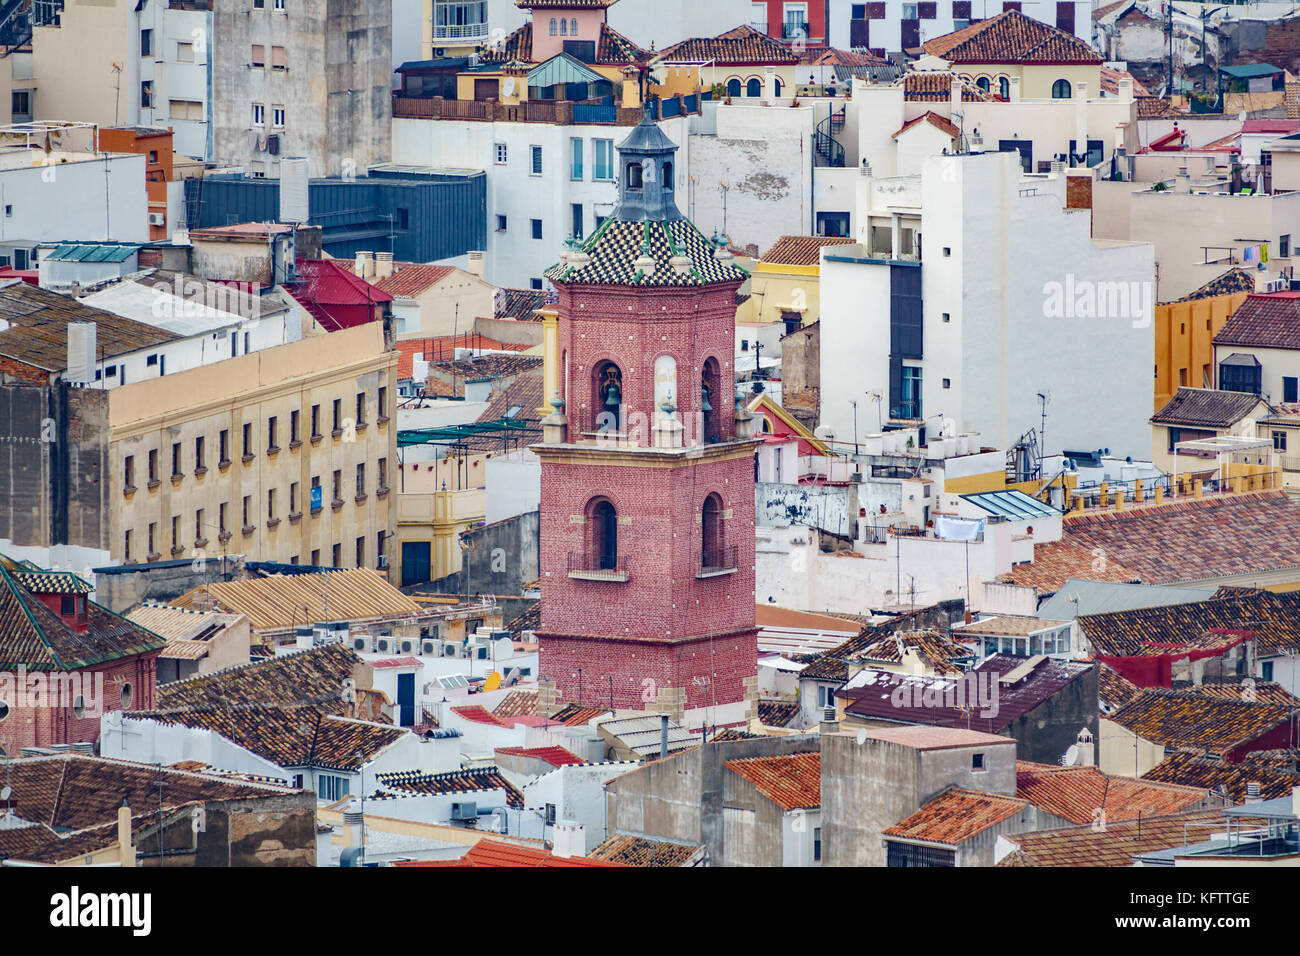 Church tower over houses - Stock Image